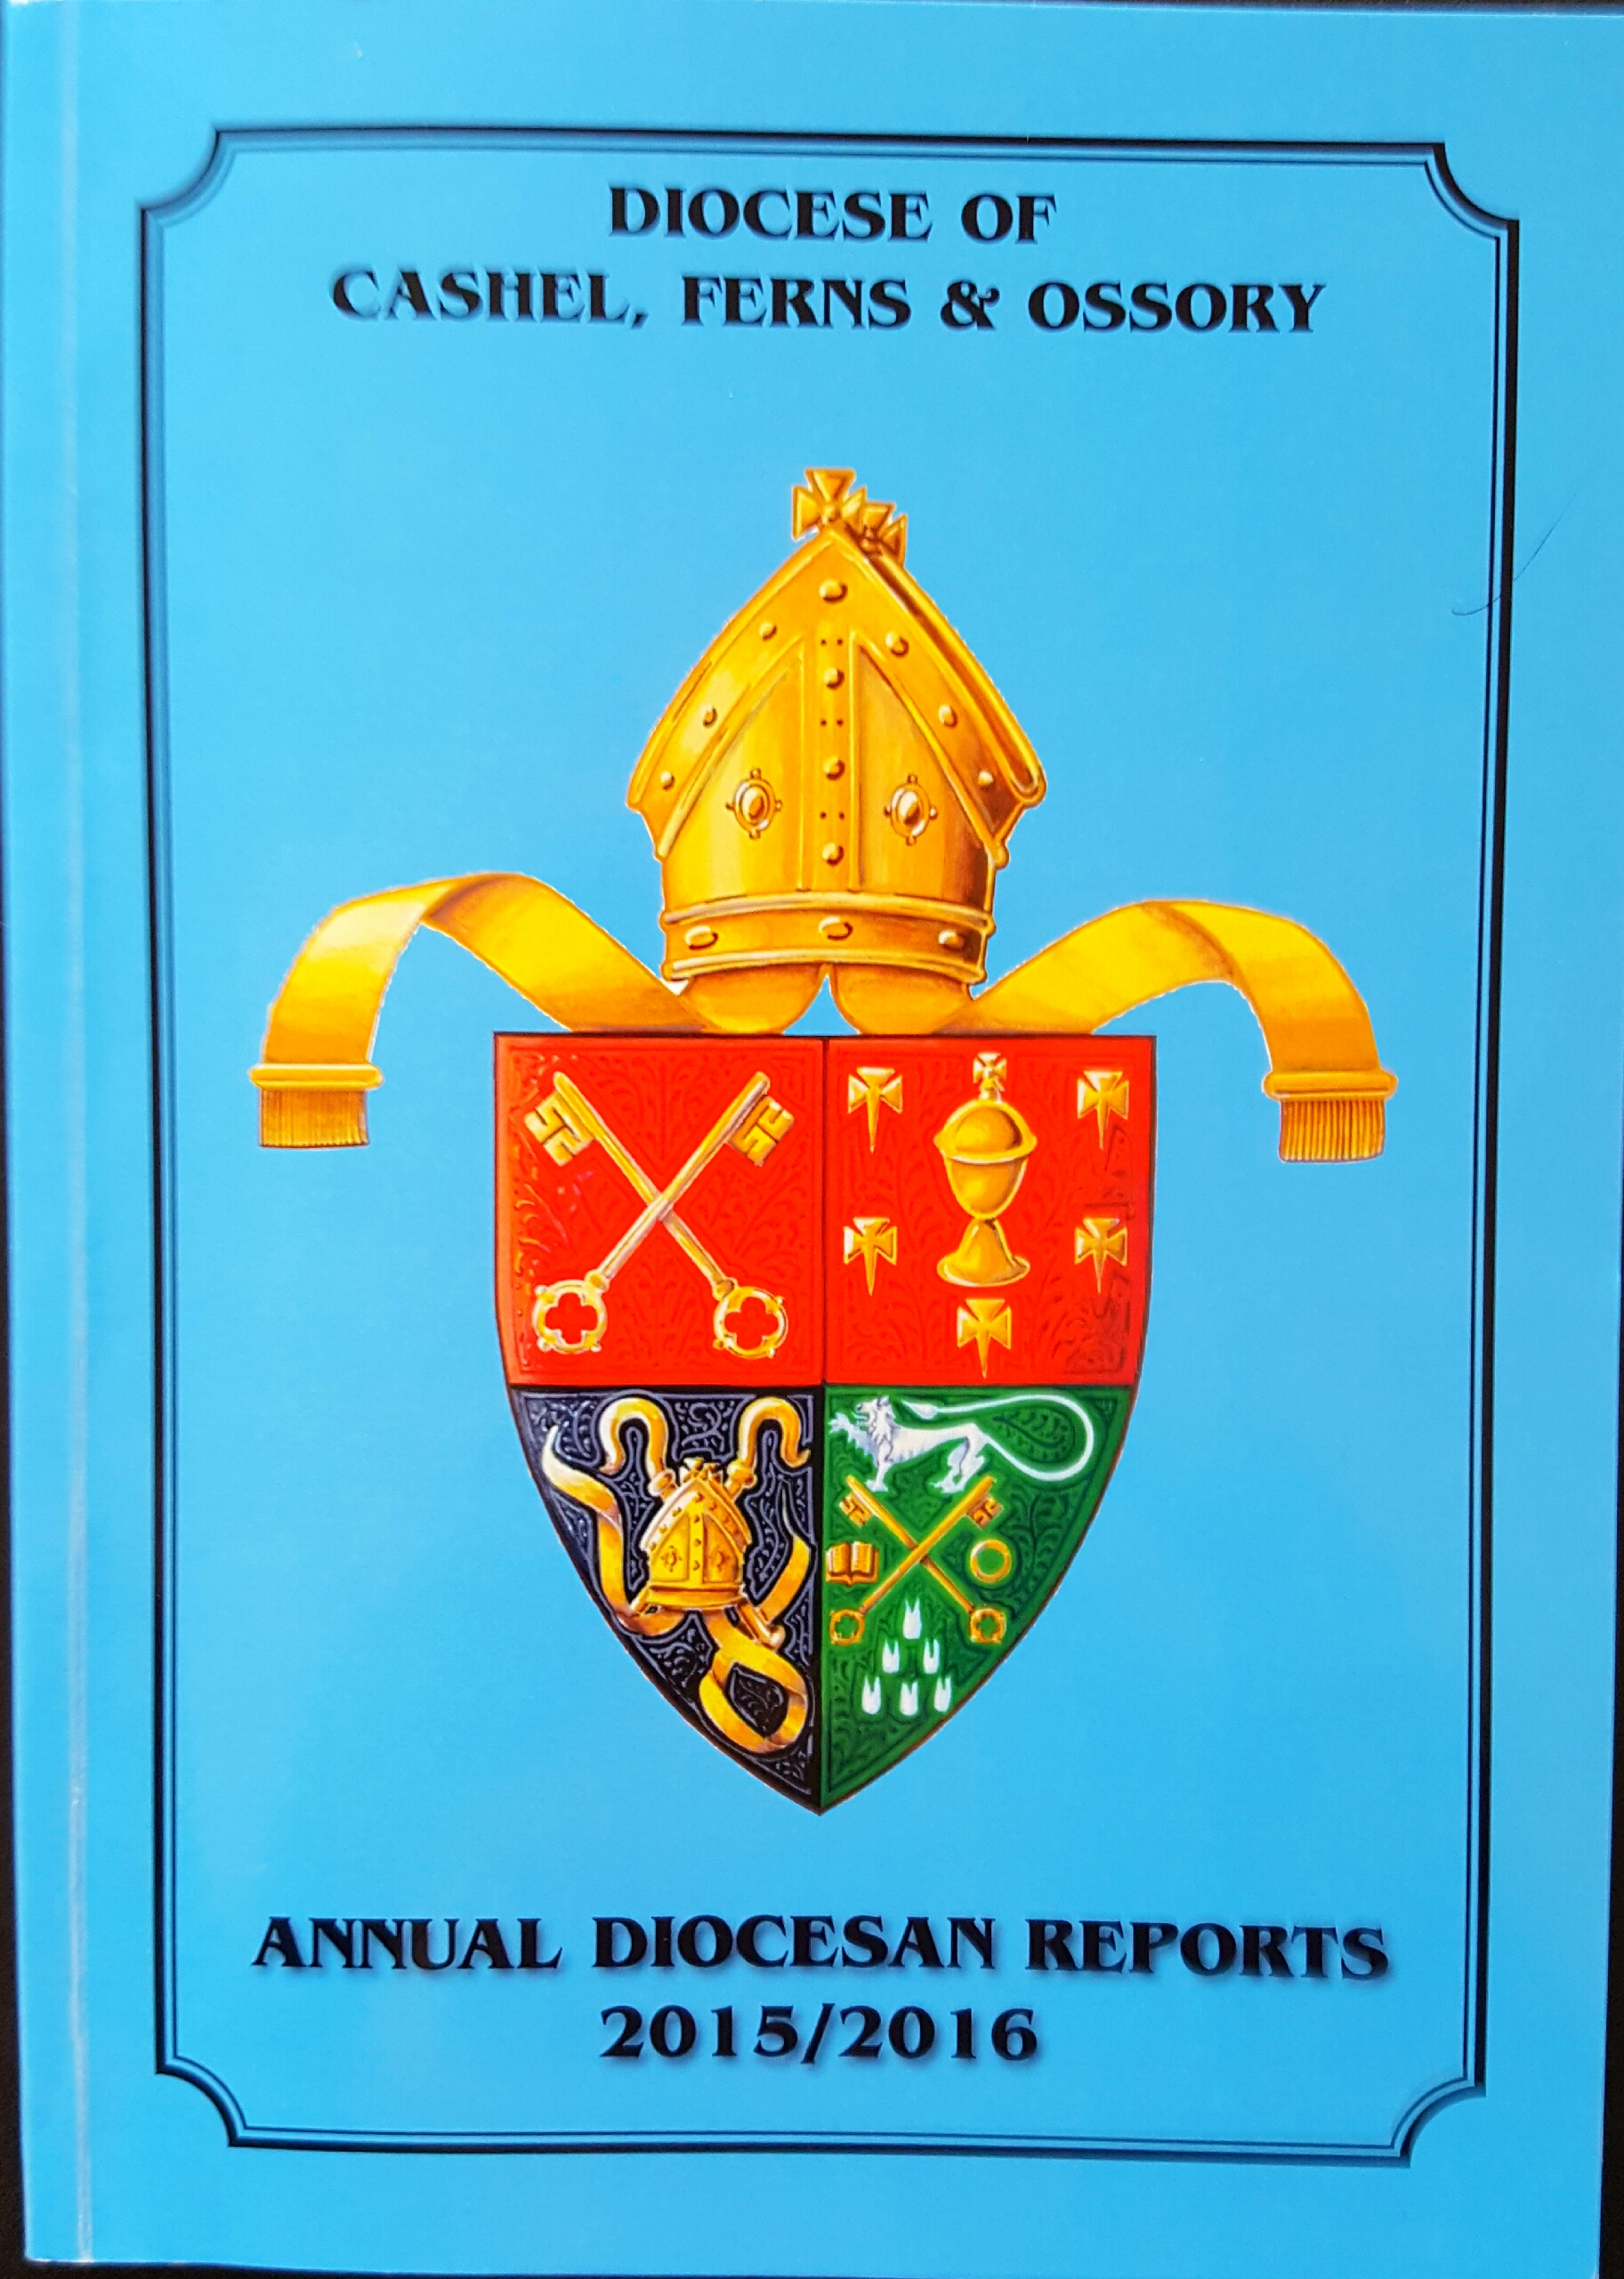 Synod report 2016